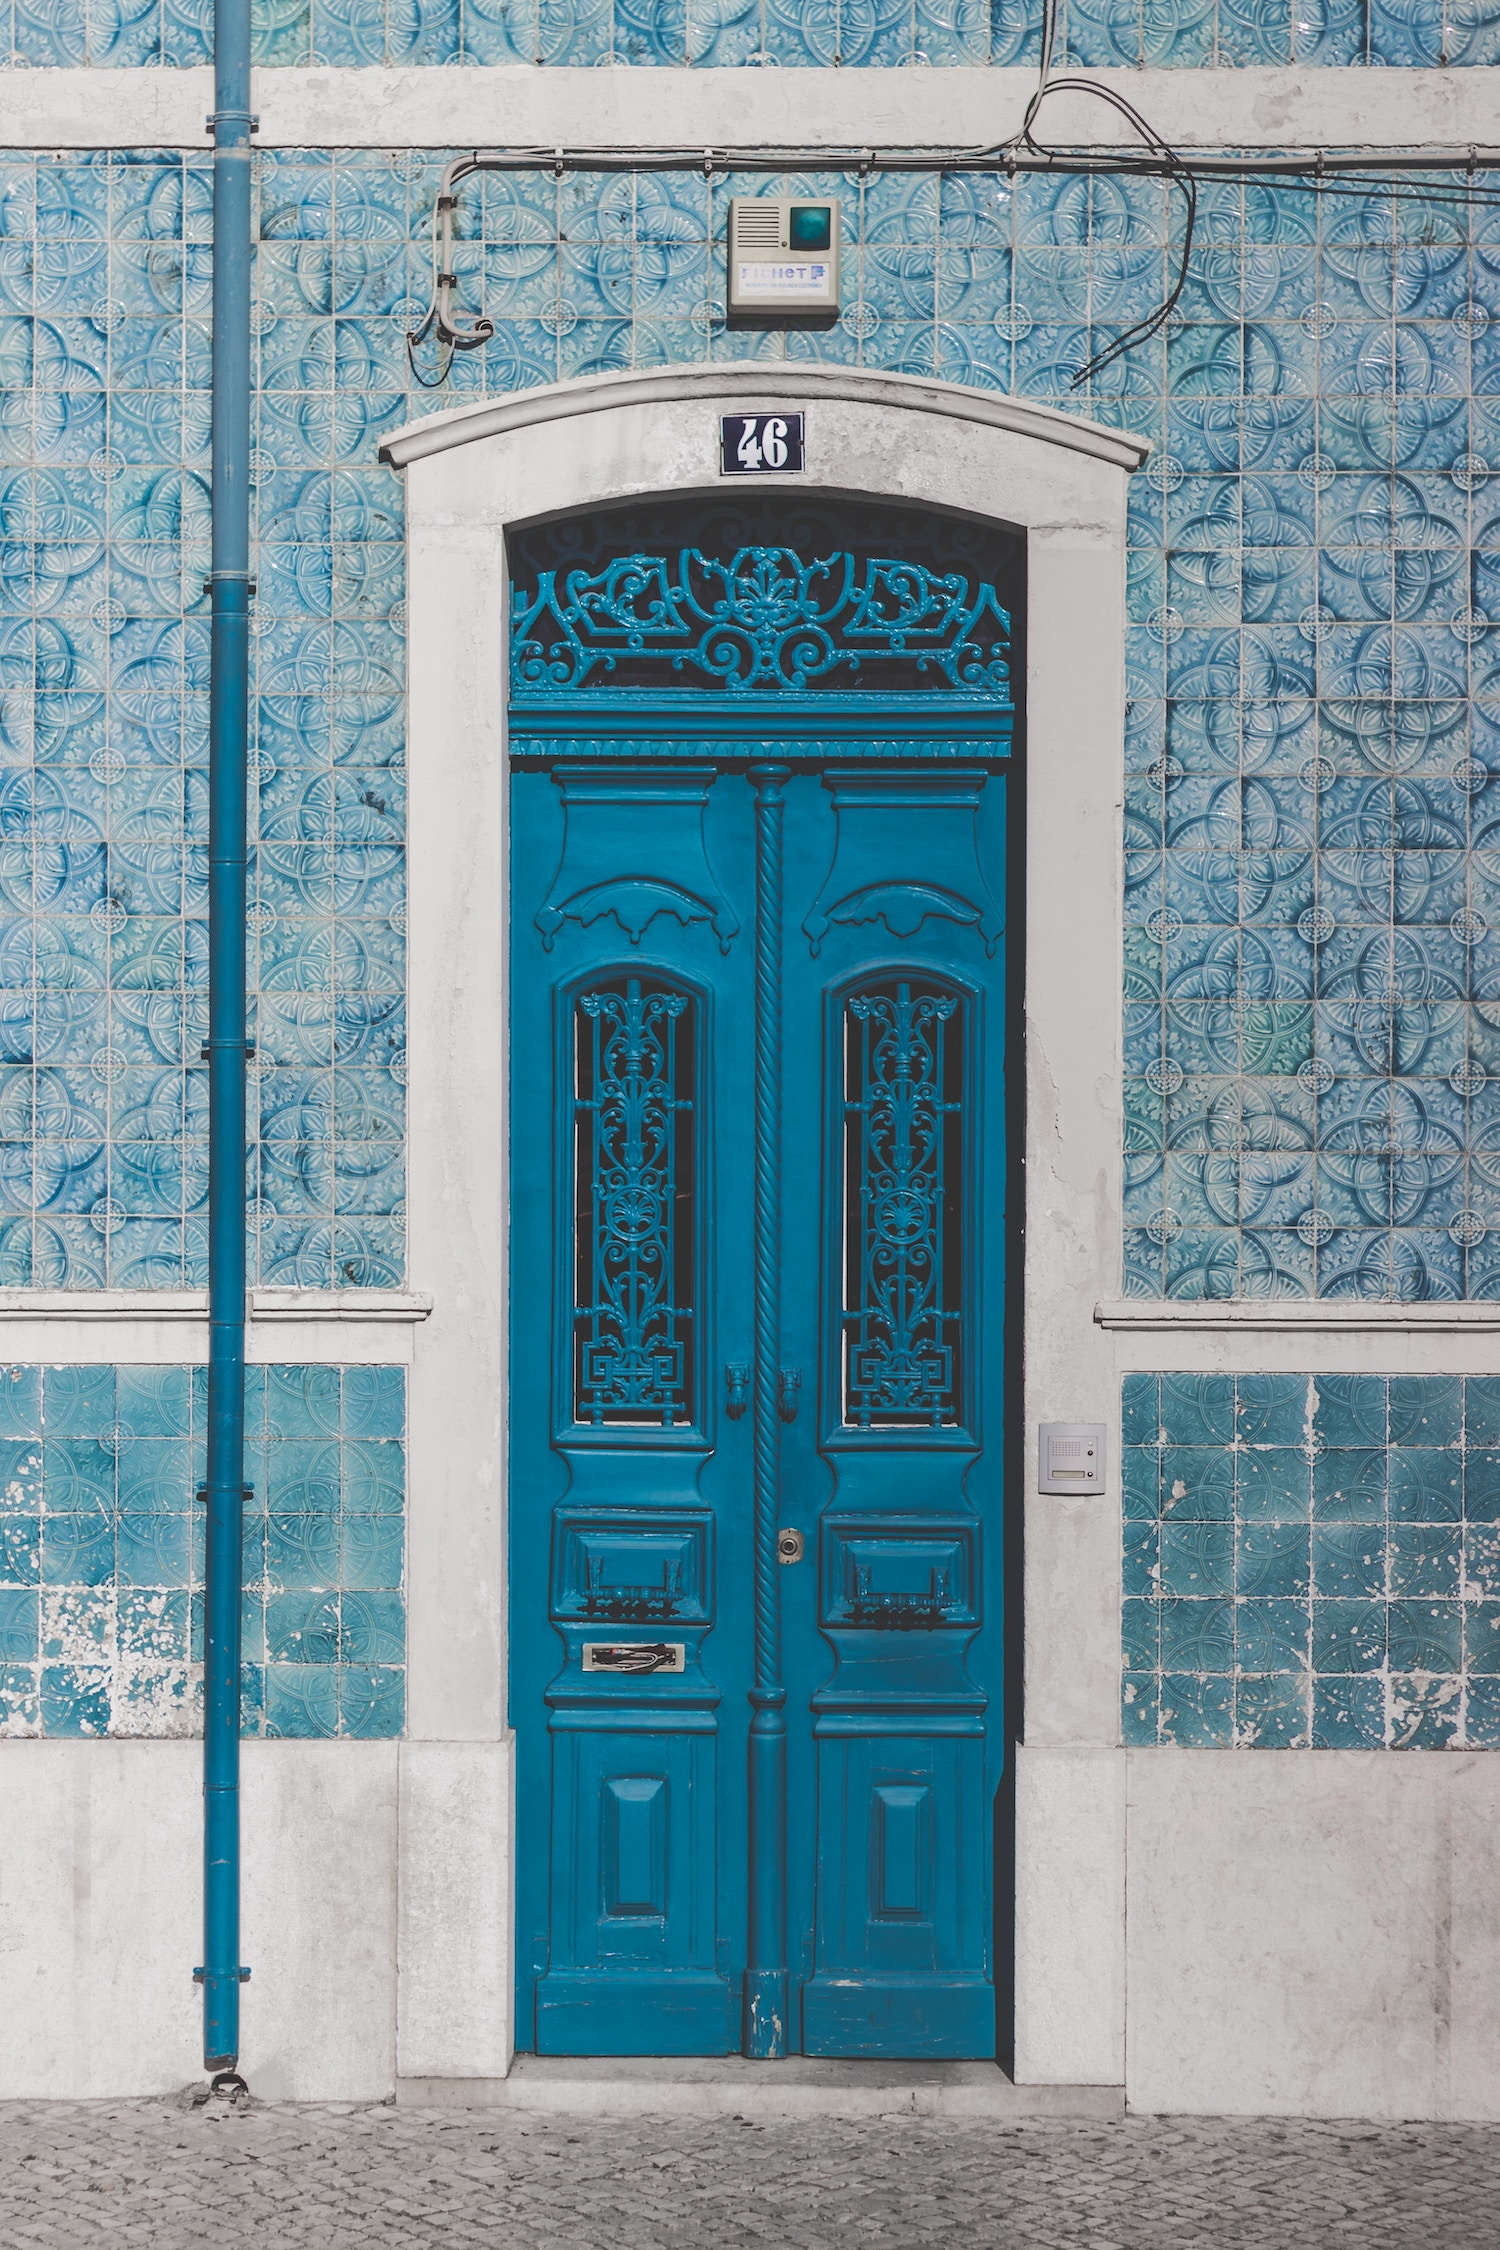 Tiled Facades - The Portuguese seem to have a natural affinity for ceramic tiles. Or, maybe they're just natural born exhibitionists. While the rest of the world was using tiles to decorate the interior walls of homes, they went for a bolder approach and used them to decorate the facades of buildings. In the 1950s, the transit authority began tiling the interior of metro stations in an effort to make them blend in more with life aboveground.The National Tile Museum is a unique gem housed in a gorgeous 16th century convent. It's the world's only museum dedicated to chronicling the history and evolution of this art form. Both the convent and the tiles it holds are fascinating, but the highlight is Portugal's longest tile composition. Depicting Lisbon before the earthquake of 1755, this magnificent work contains 1,300 tiles and measures 120 ft long.